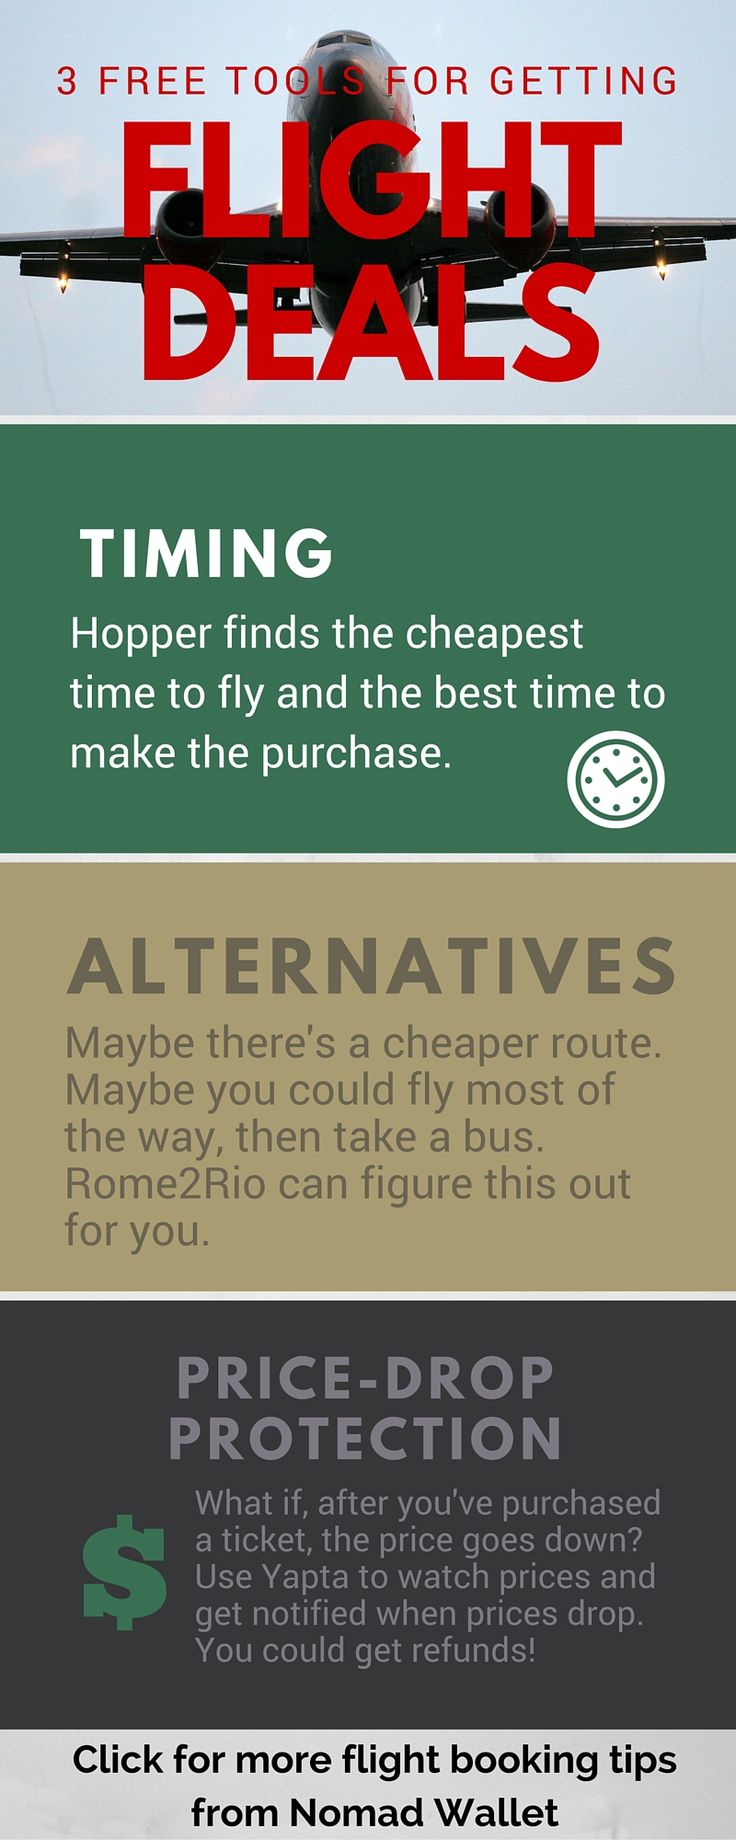 3 FREE Apps And Websites That You Can Use To Score Cheap Flights. Check Out